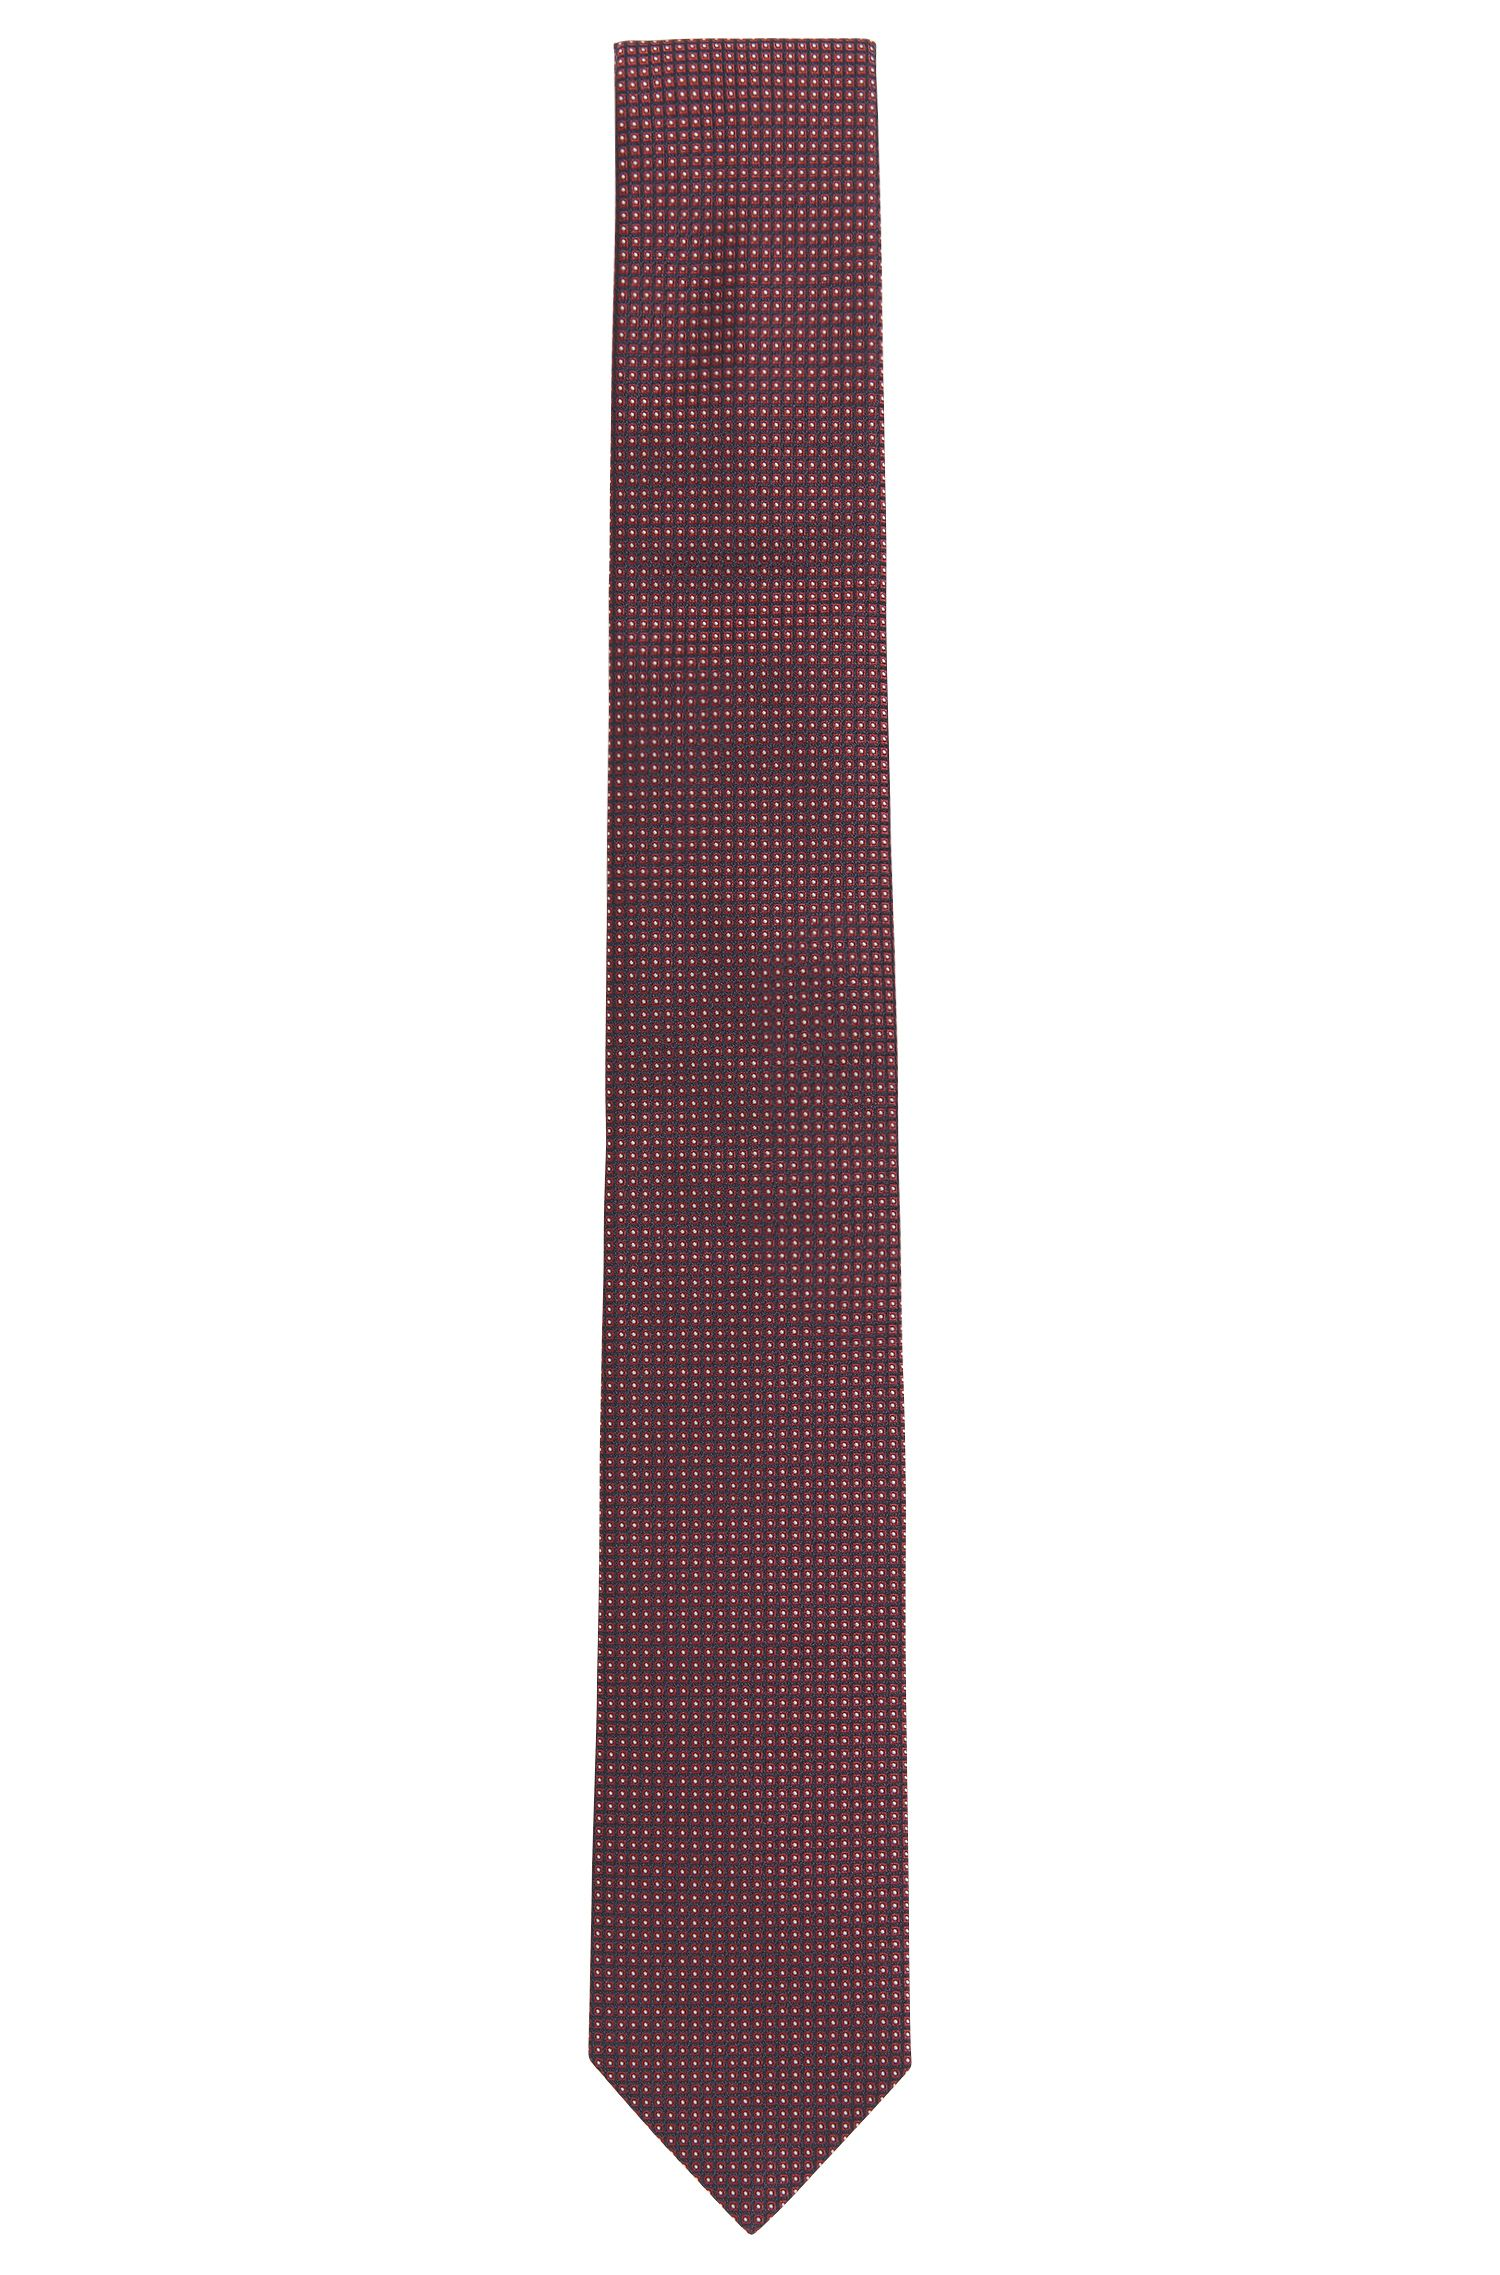 Square-patterned tie in fine silk jacquard